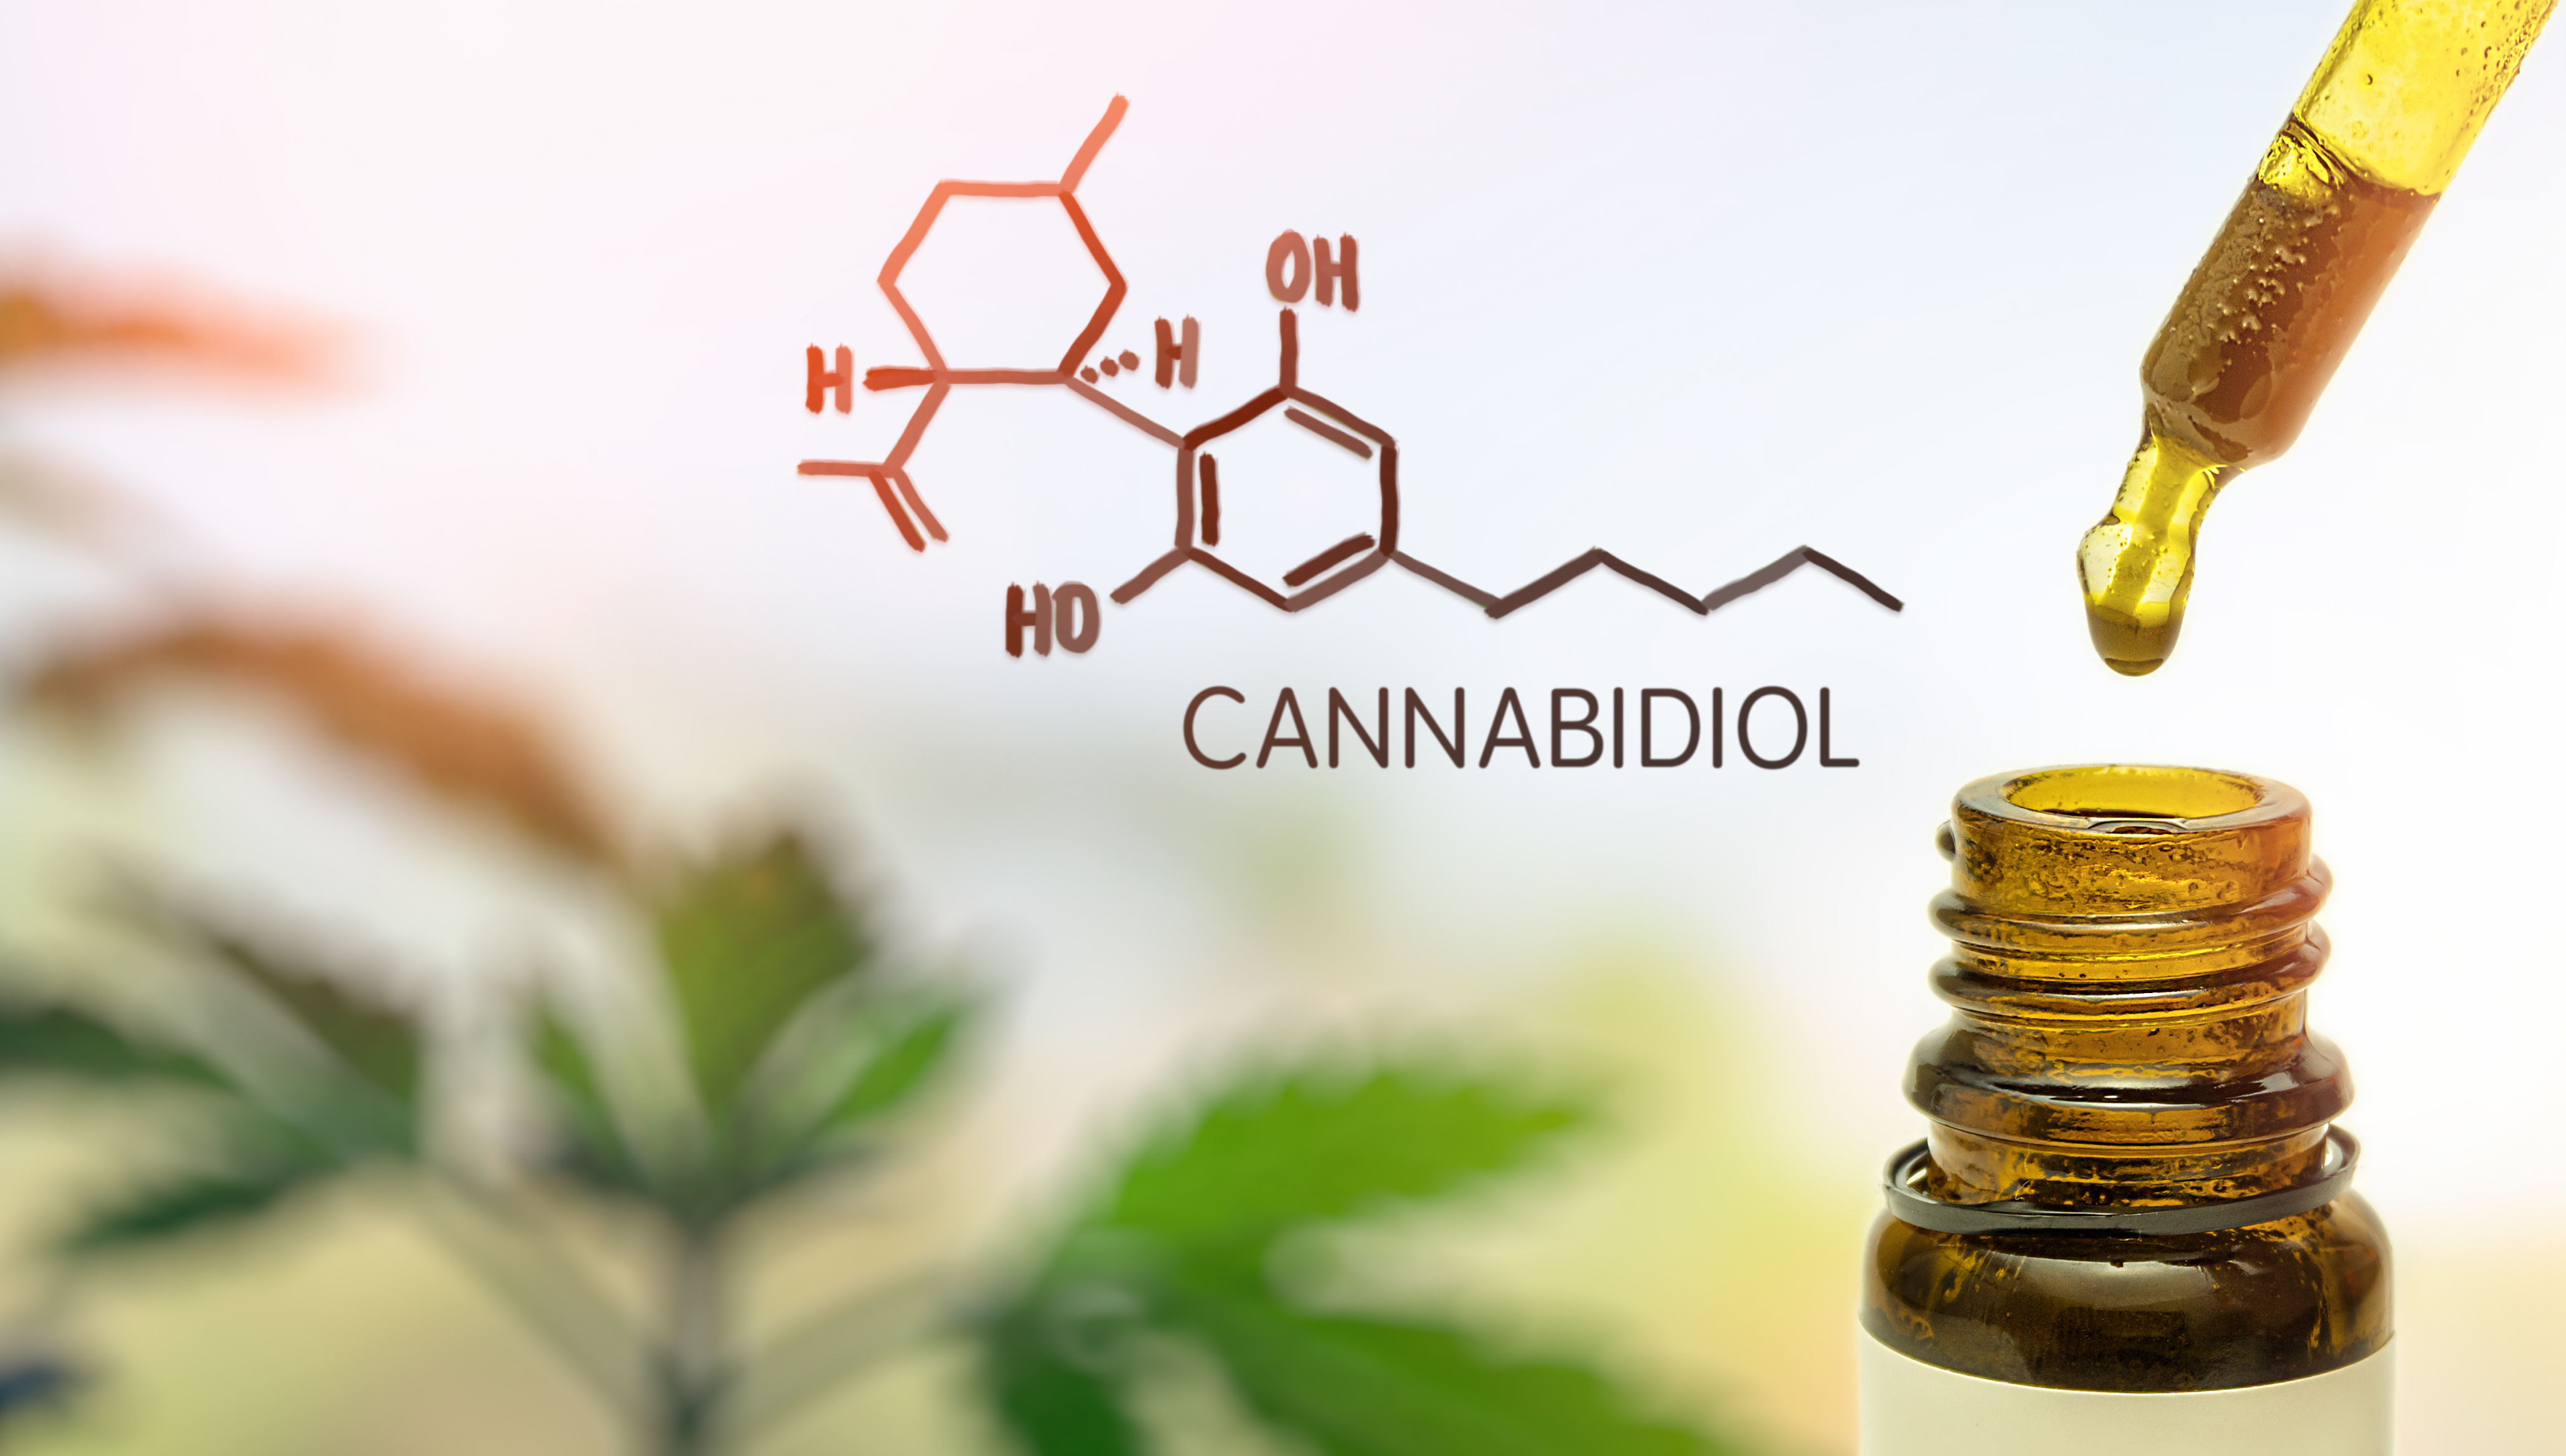 Trending News Today: Clinical Trial to Test CBD for Parkinson Disease-Related Psychosis